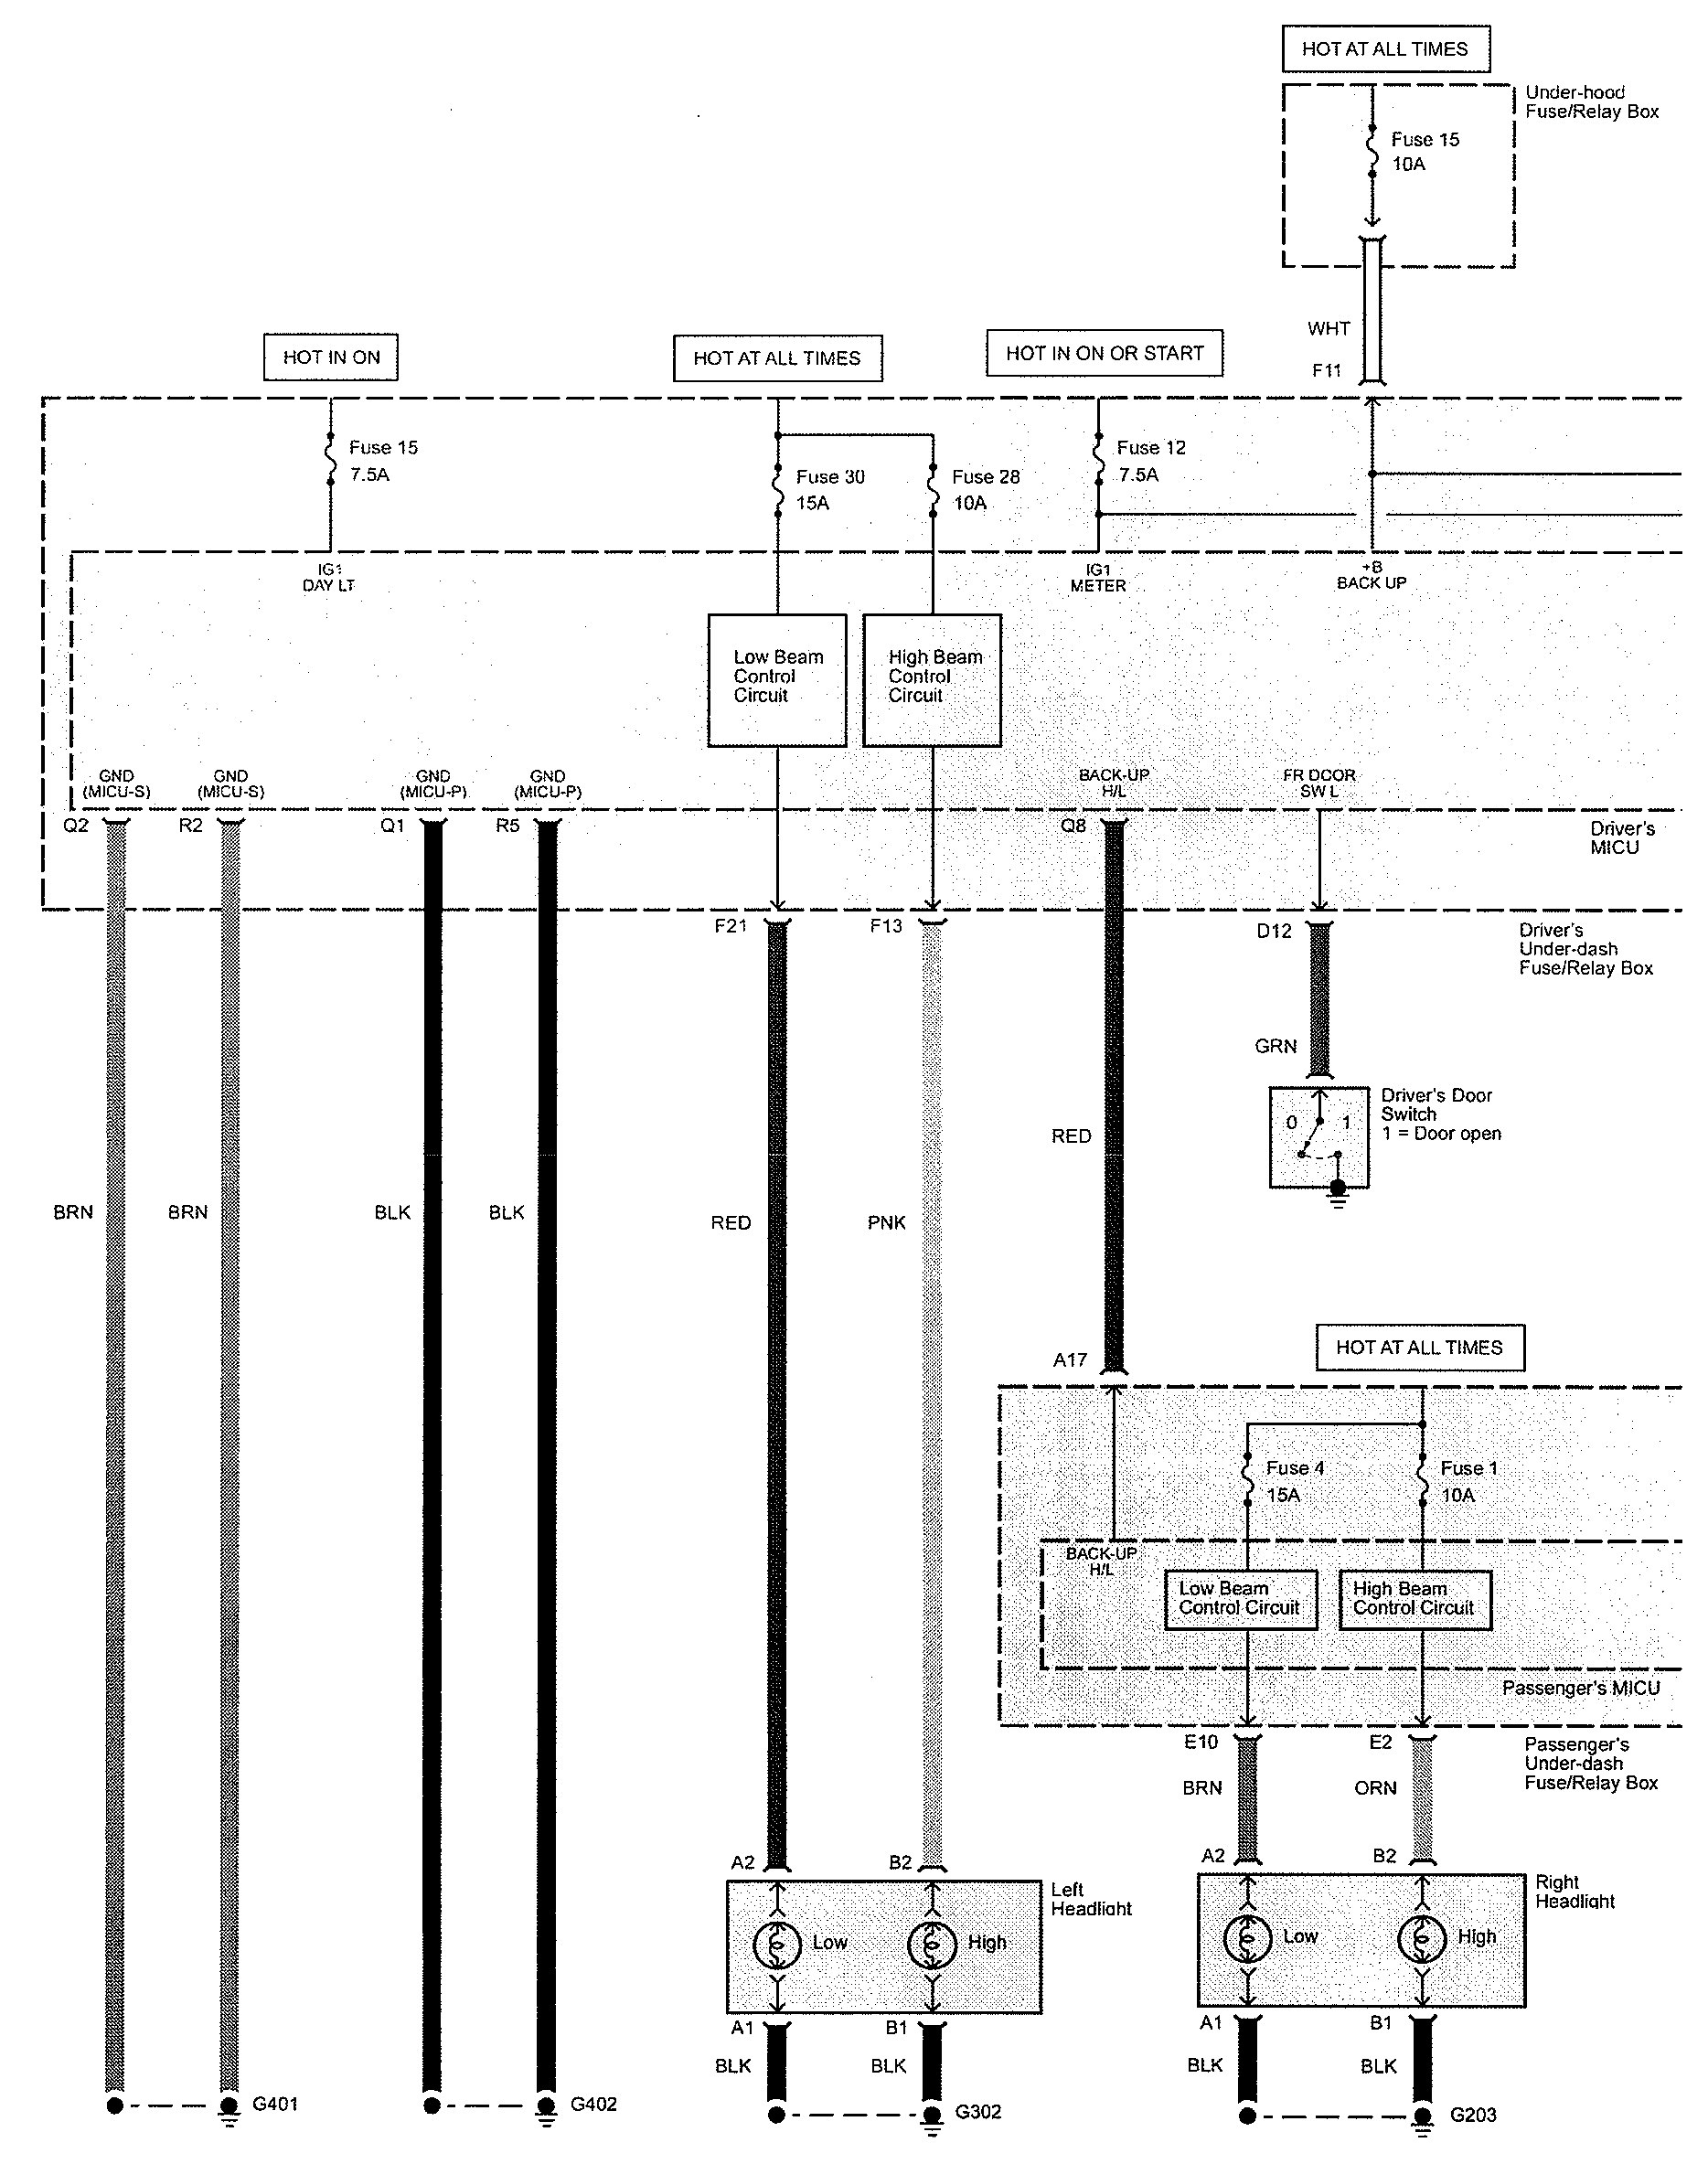 2009 Pt Cruiser Wire Schematic Great Design Of Wiring Diagram Exterior Lighting 2007 48 2001 Chrysler 2006